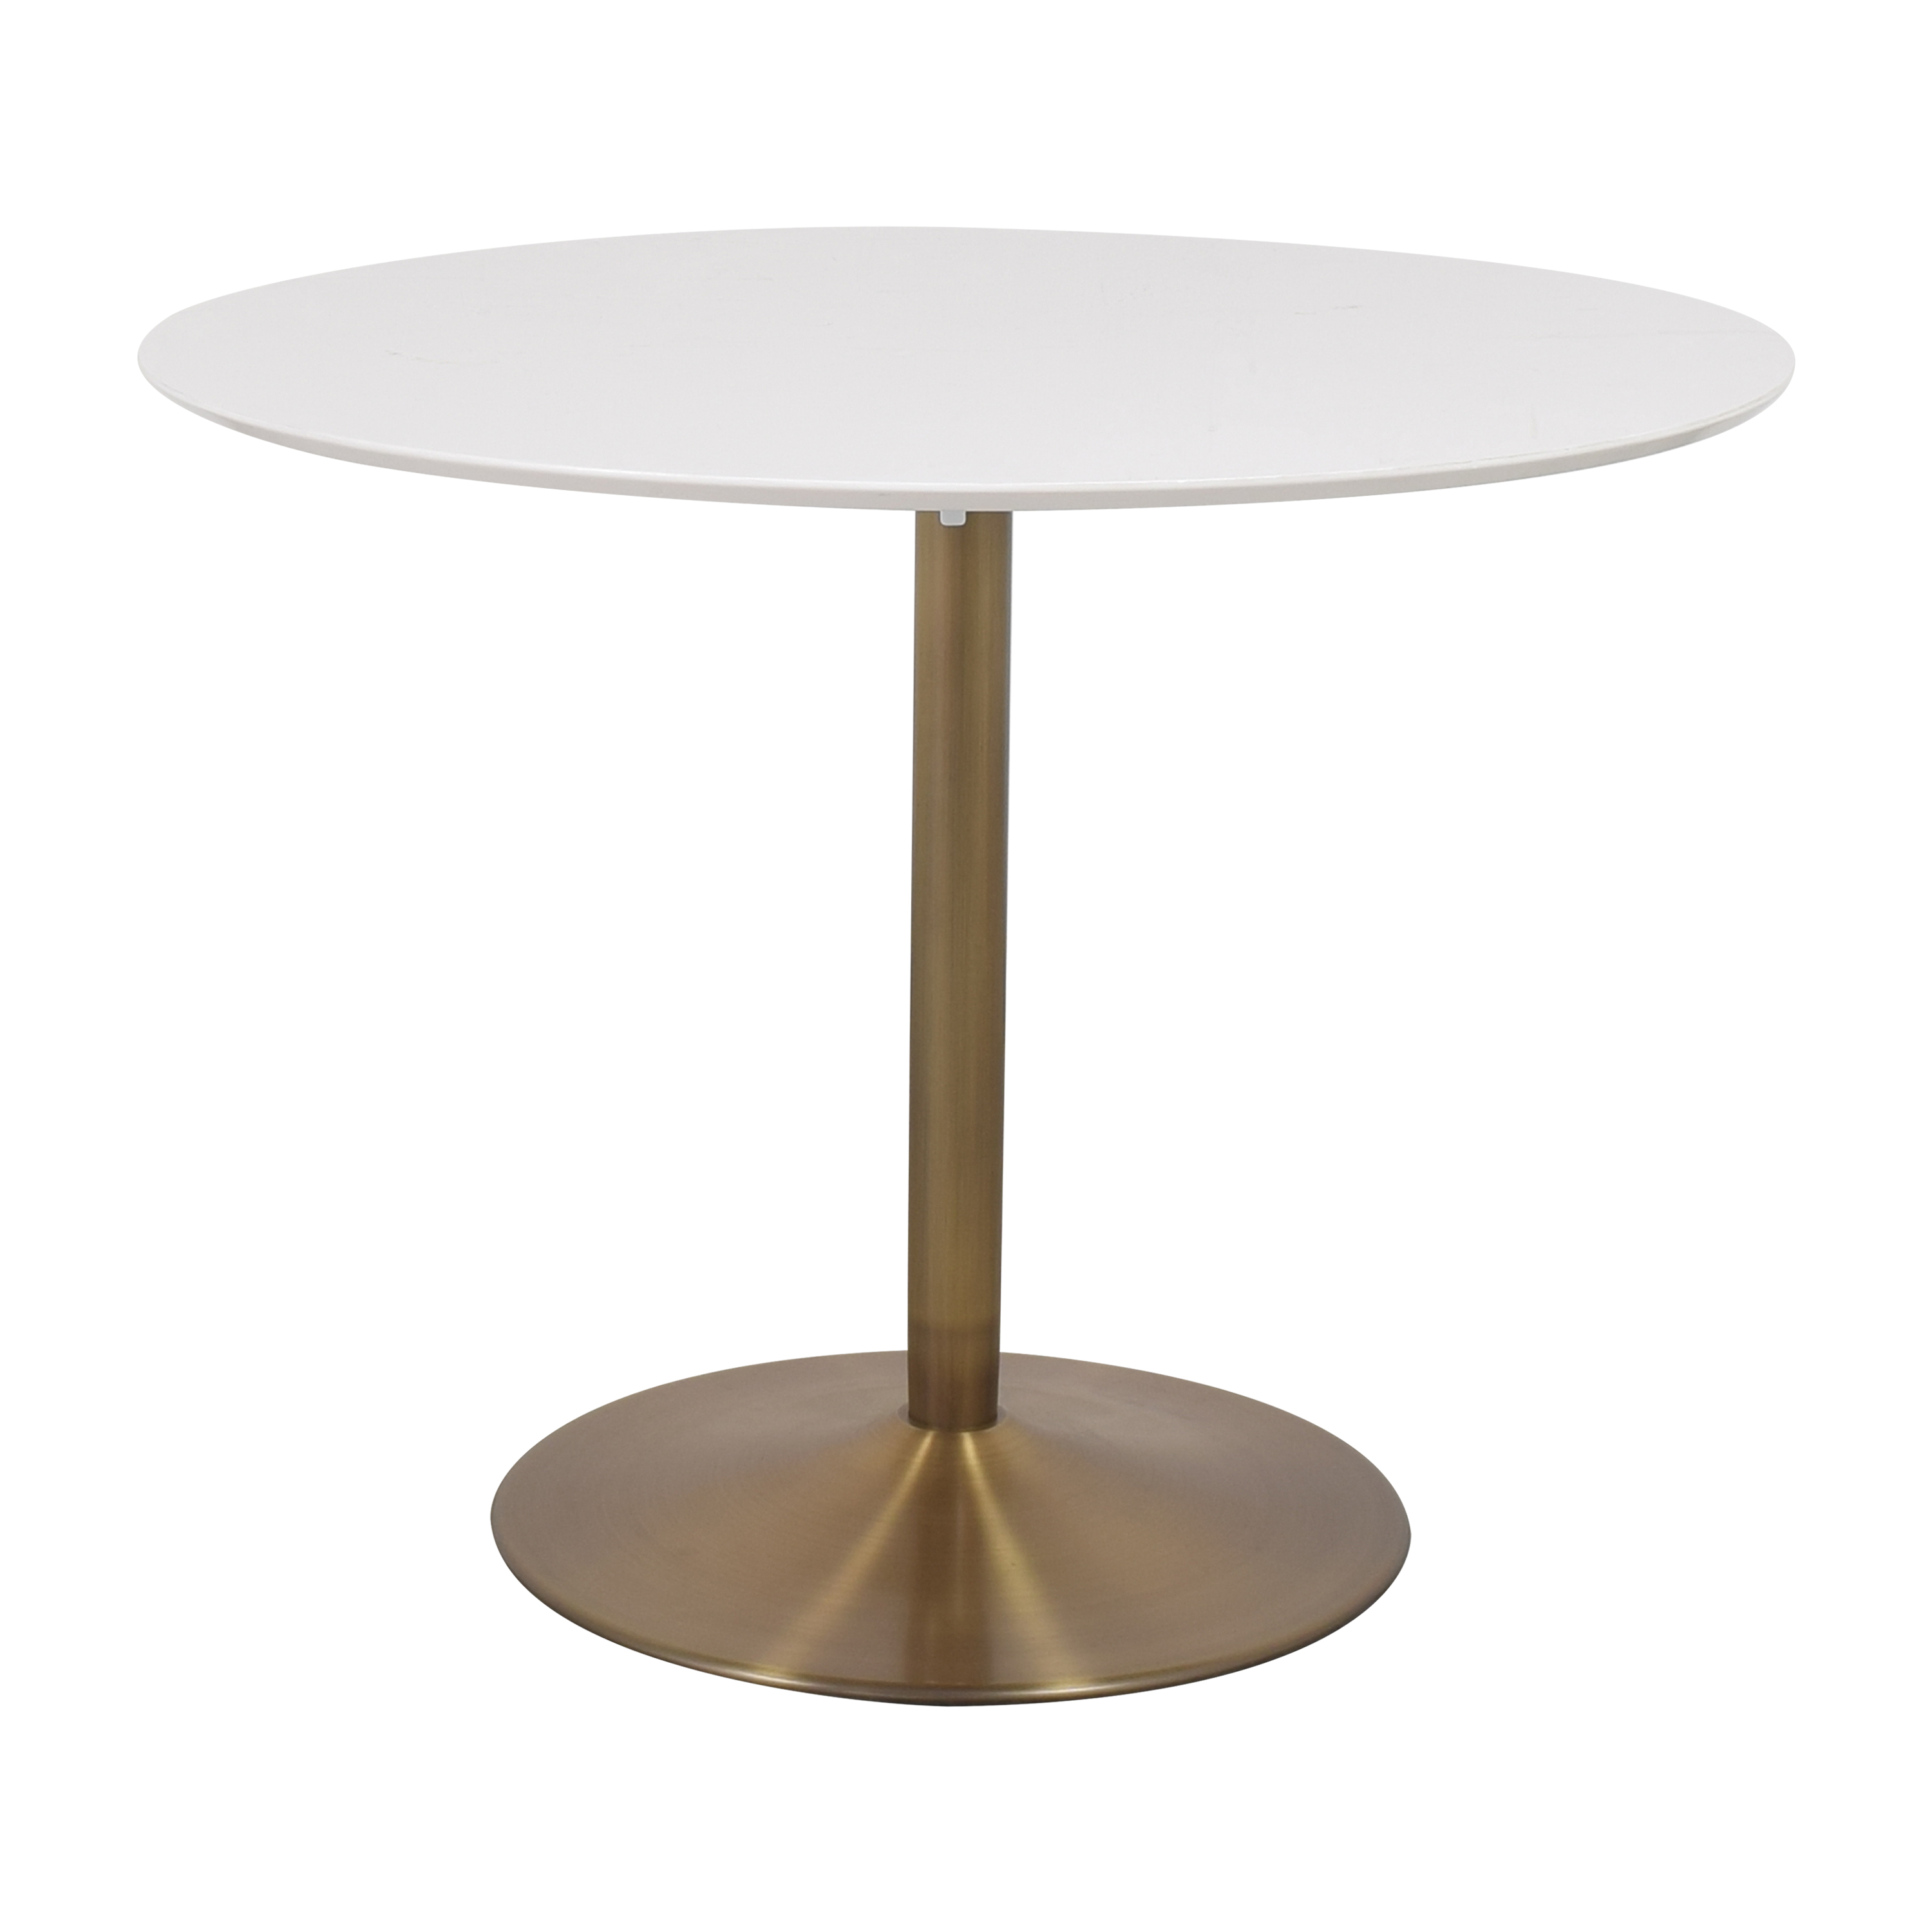 CB2 CB2 Odyssey Dining Table discount